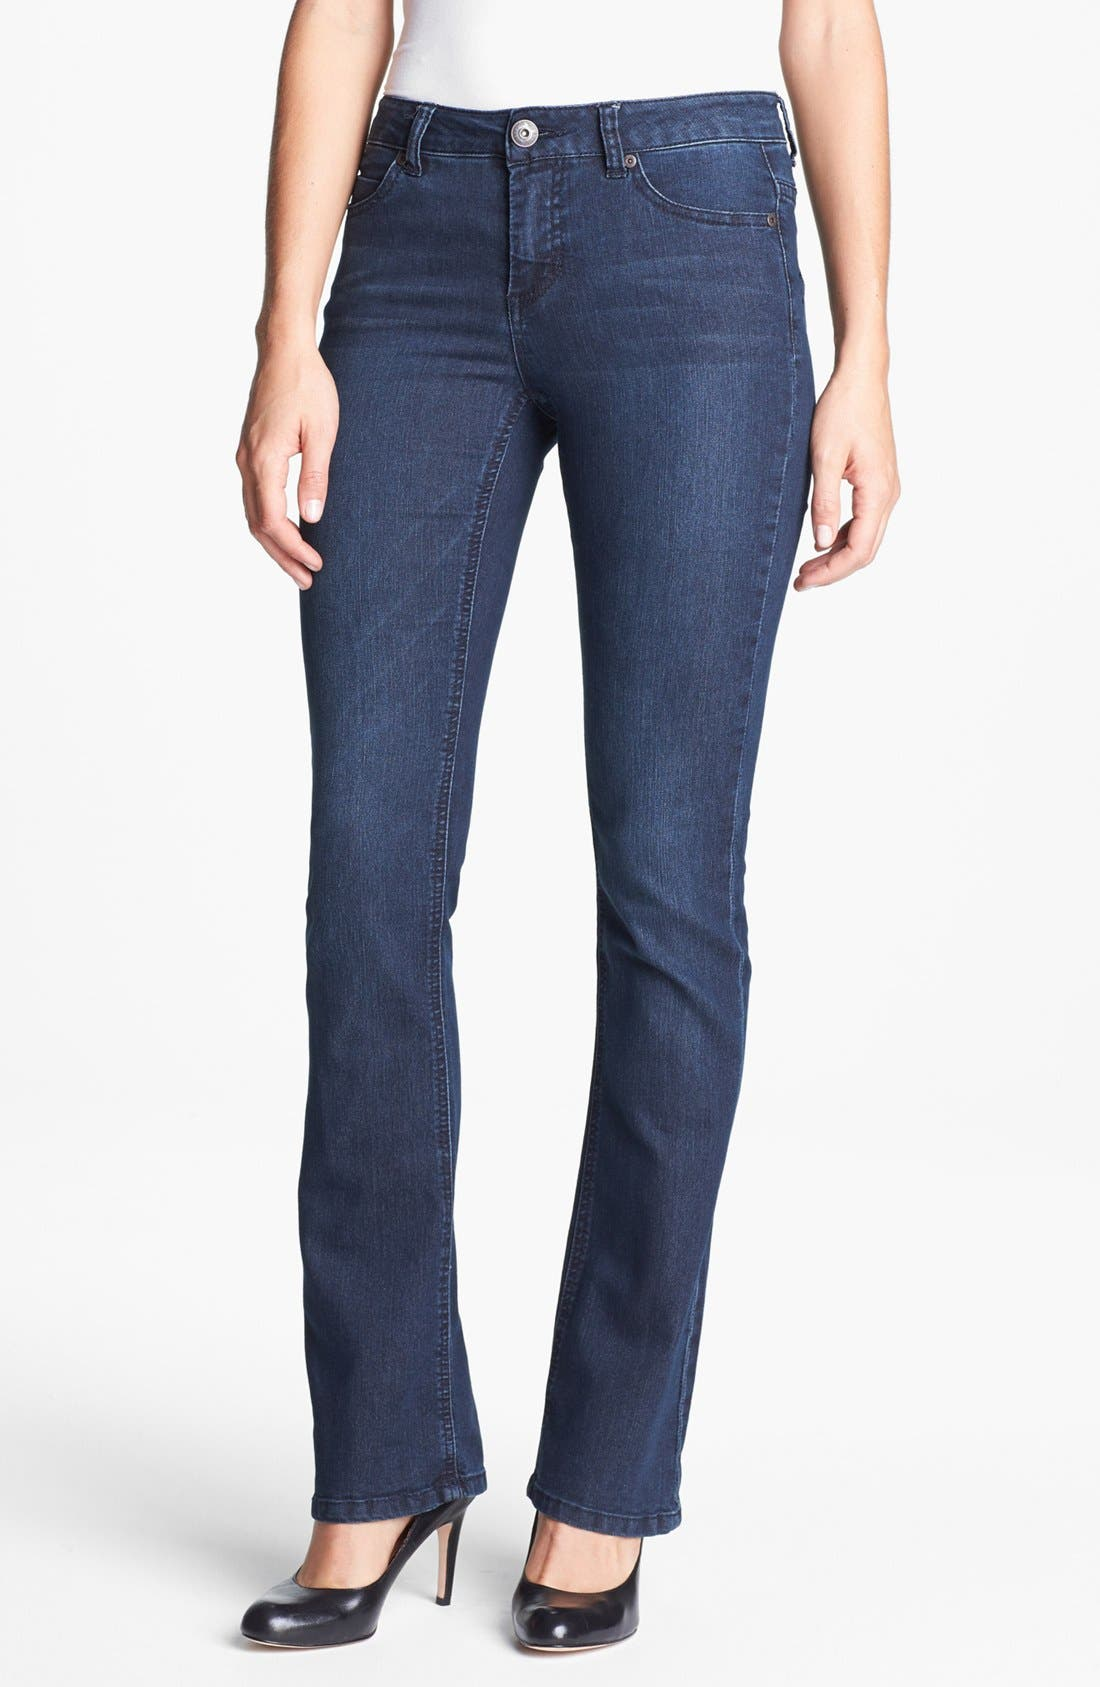 Alternate Image 1 Selected - Liverpool Jeans Company 'Rita' Bootcut Stretch Jeans (Petite)